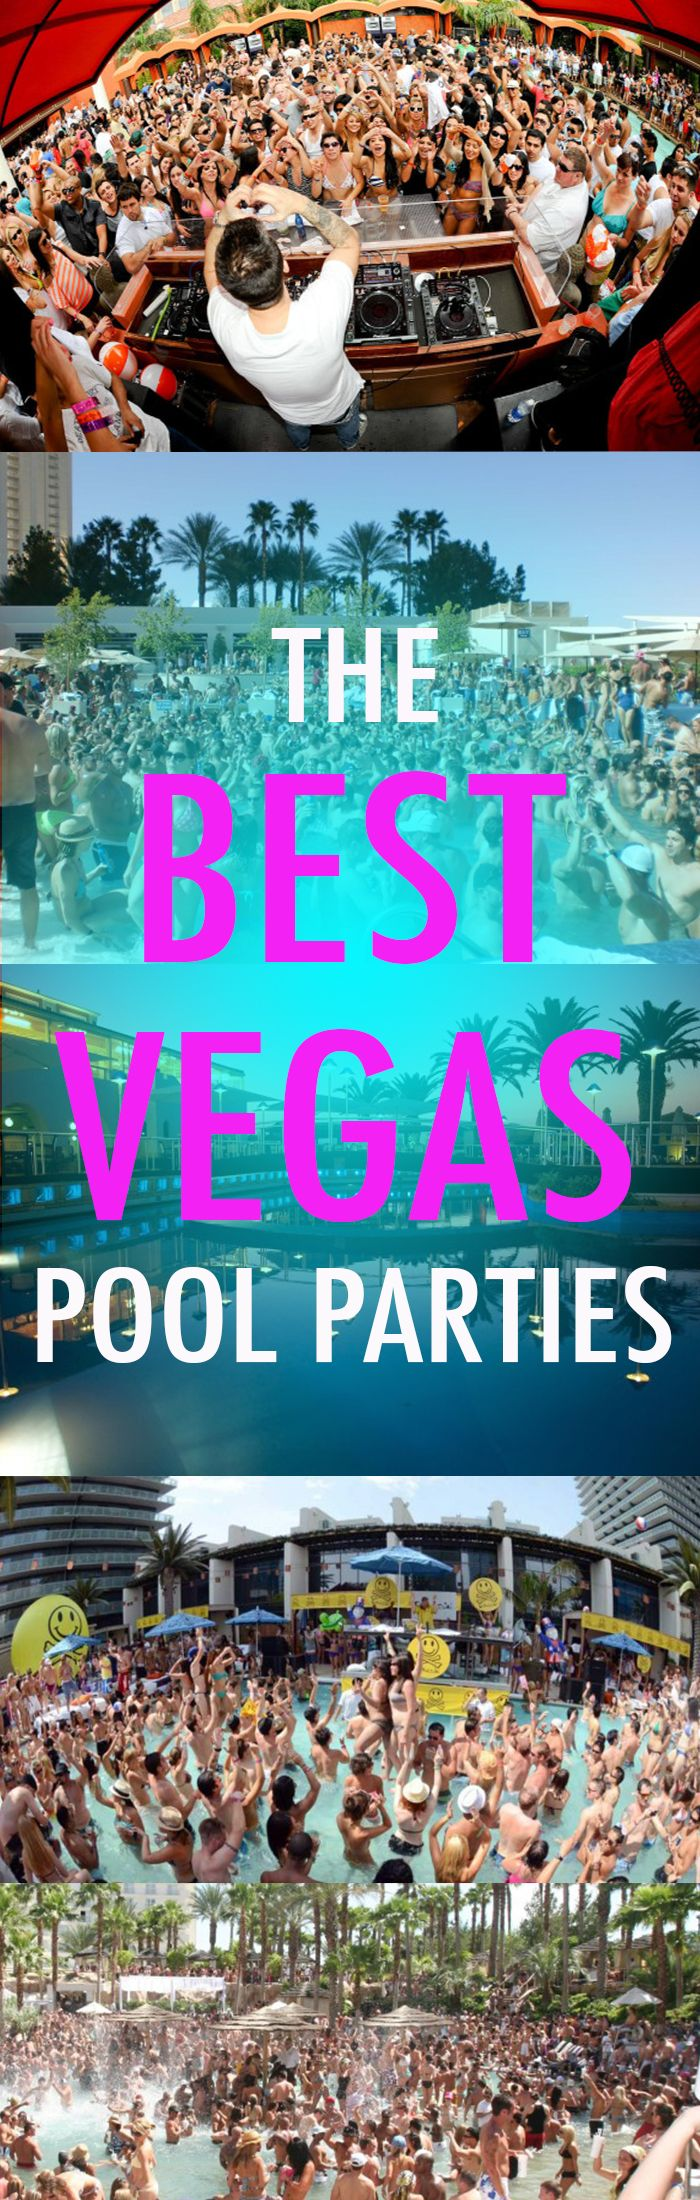 Top Vegas pool parties!